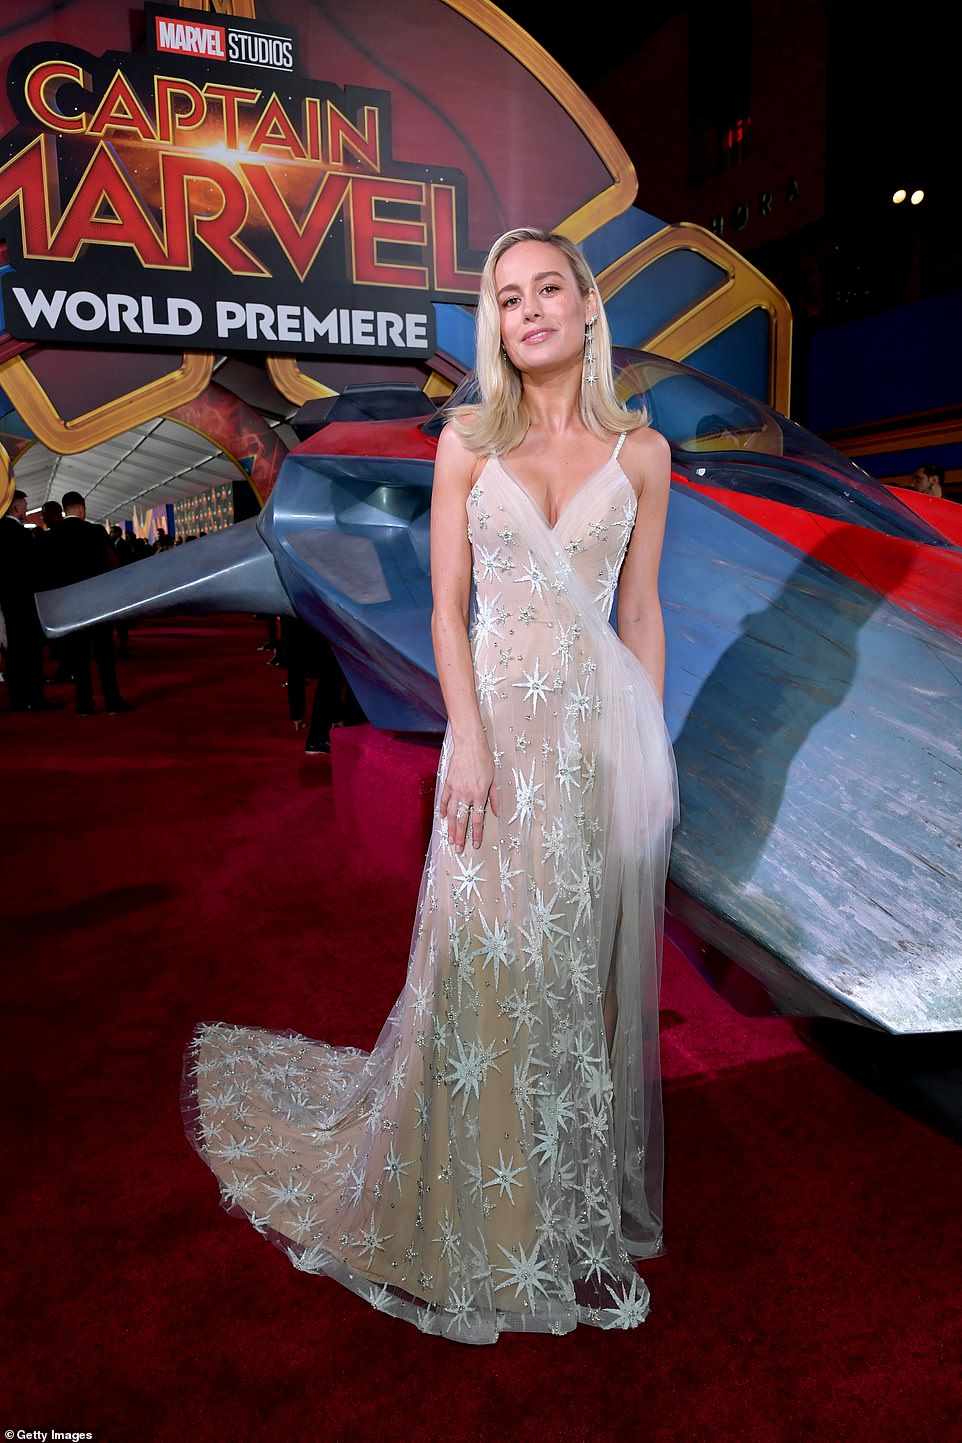 brie larson sparkles in jaw-dropping gold designer gown dotted with